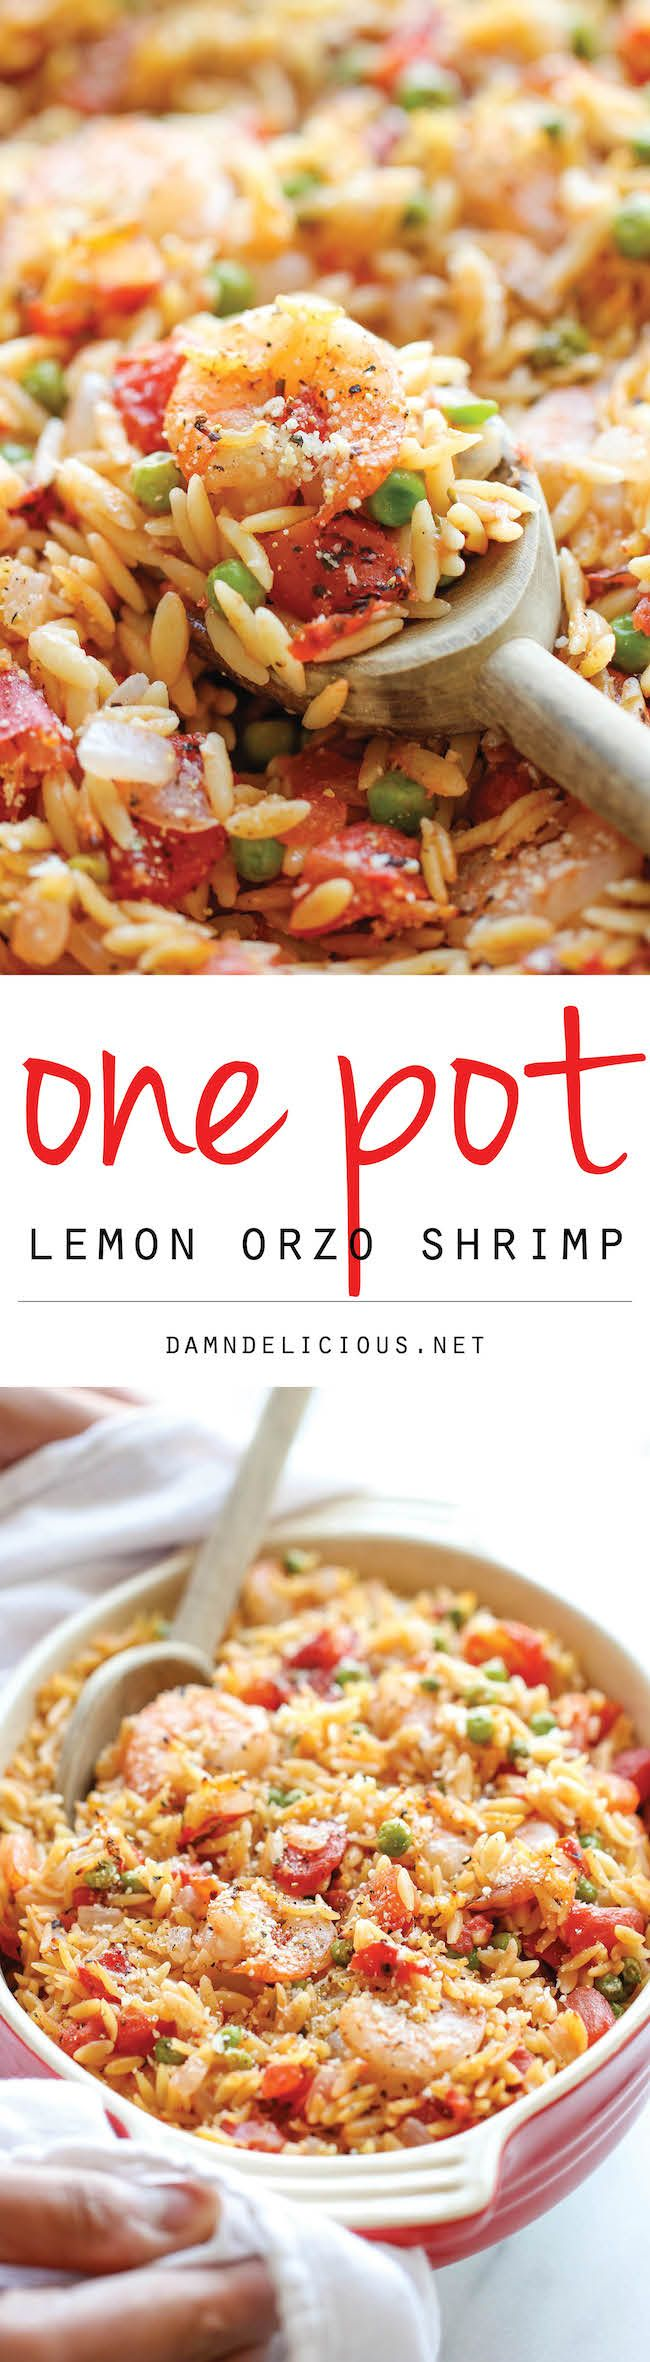 One Pot Lemon Orzo Shrimp - A super easy one pot meal that the whole family will love – even the orzo gets cooked right in the pot! #recipe #dinner